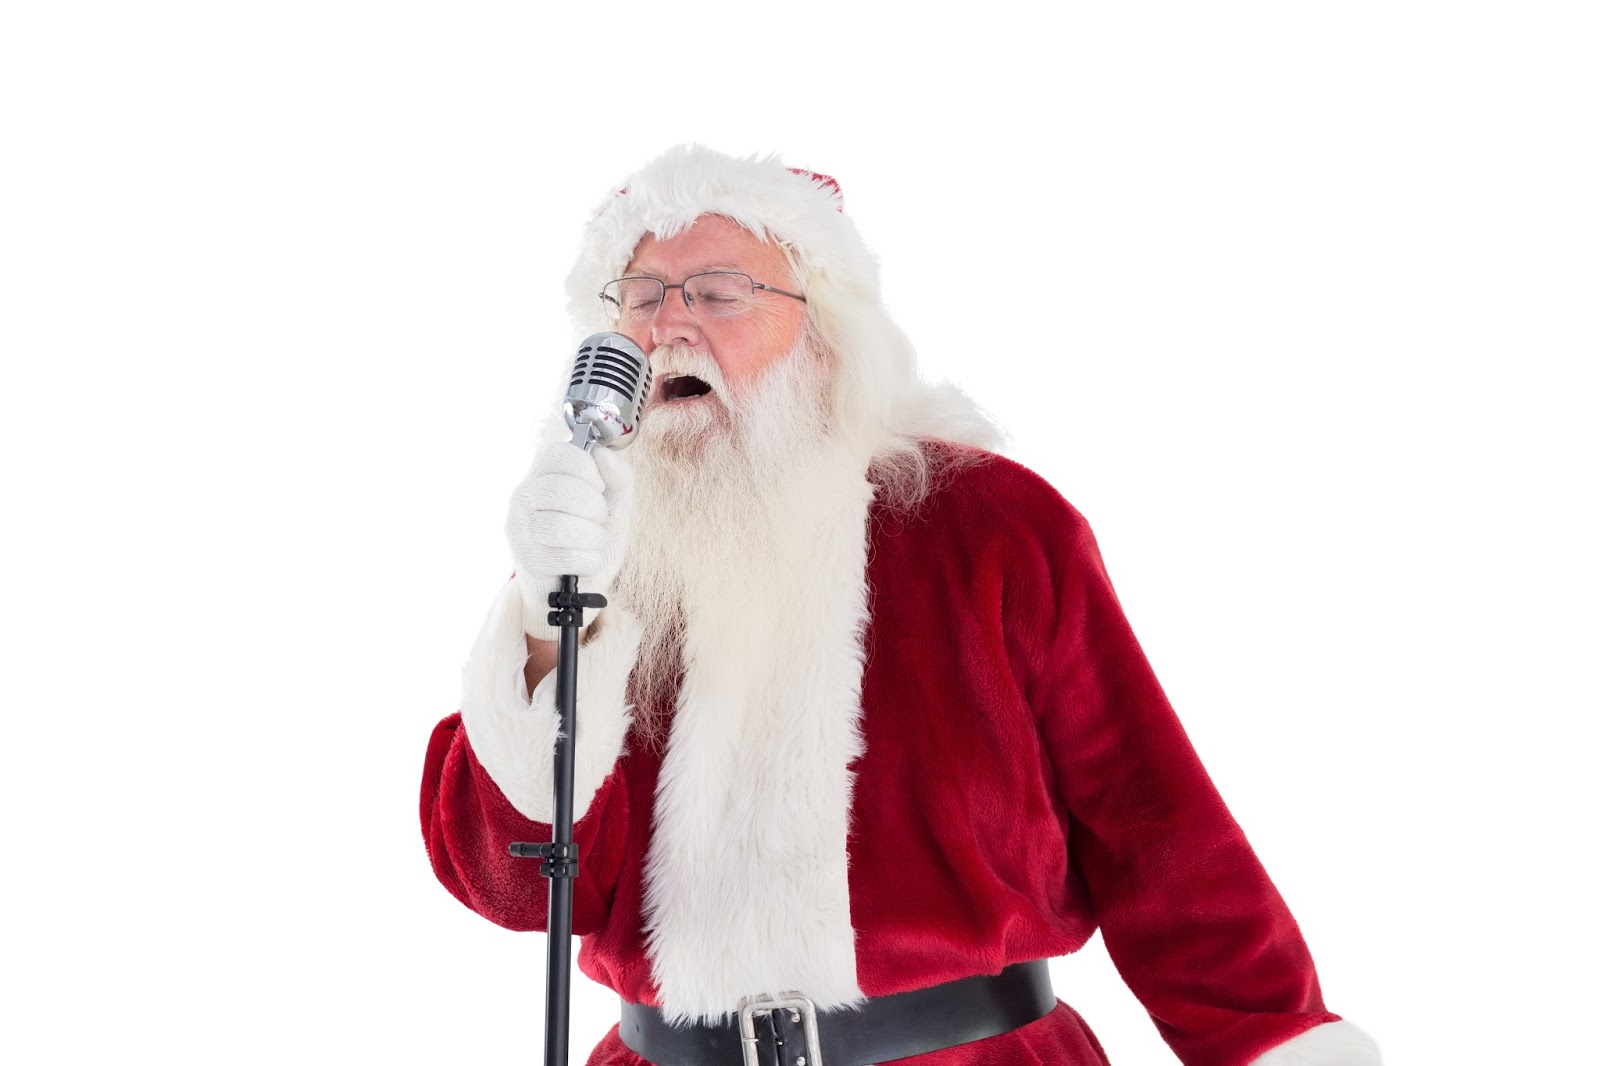 Top 10 Christmas Songs to Get You in the Spirit